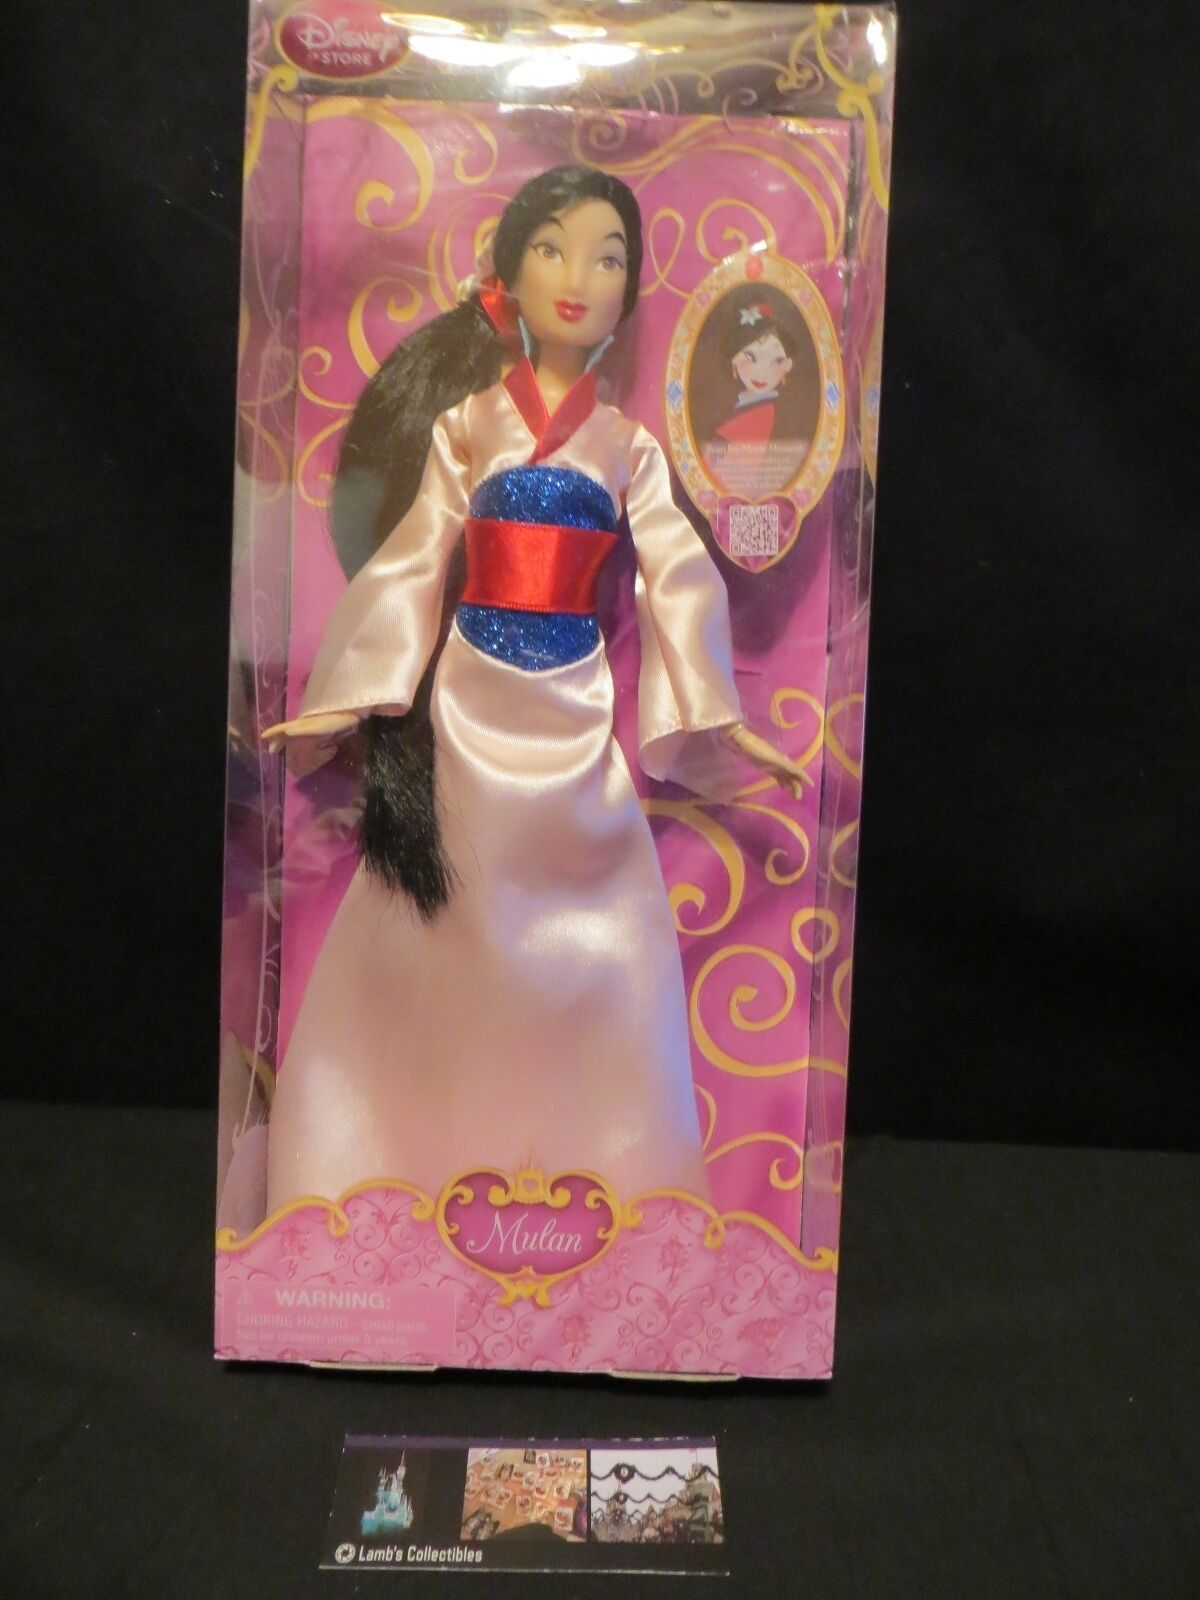 Primary image for Mulan Kimono Disney Store Authentic Classic Doll 12 inch Action Figure Princess